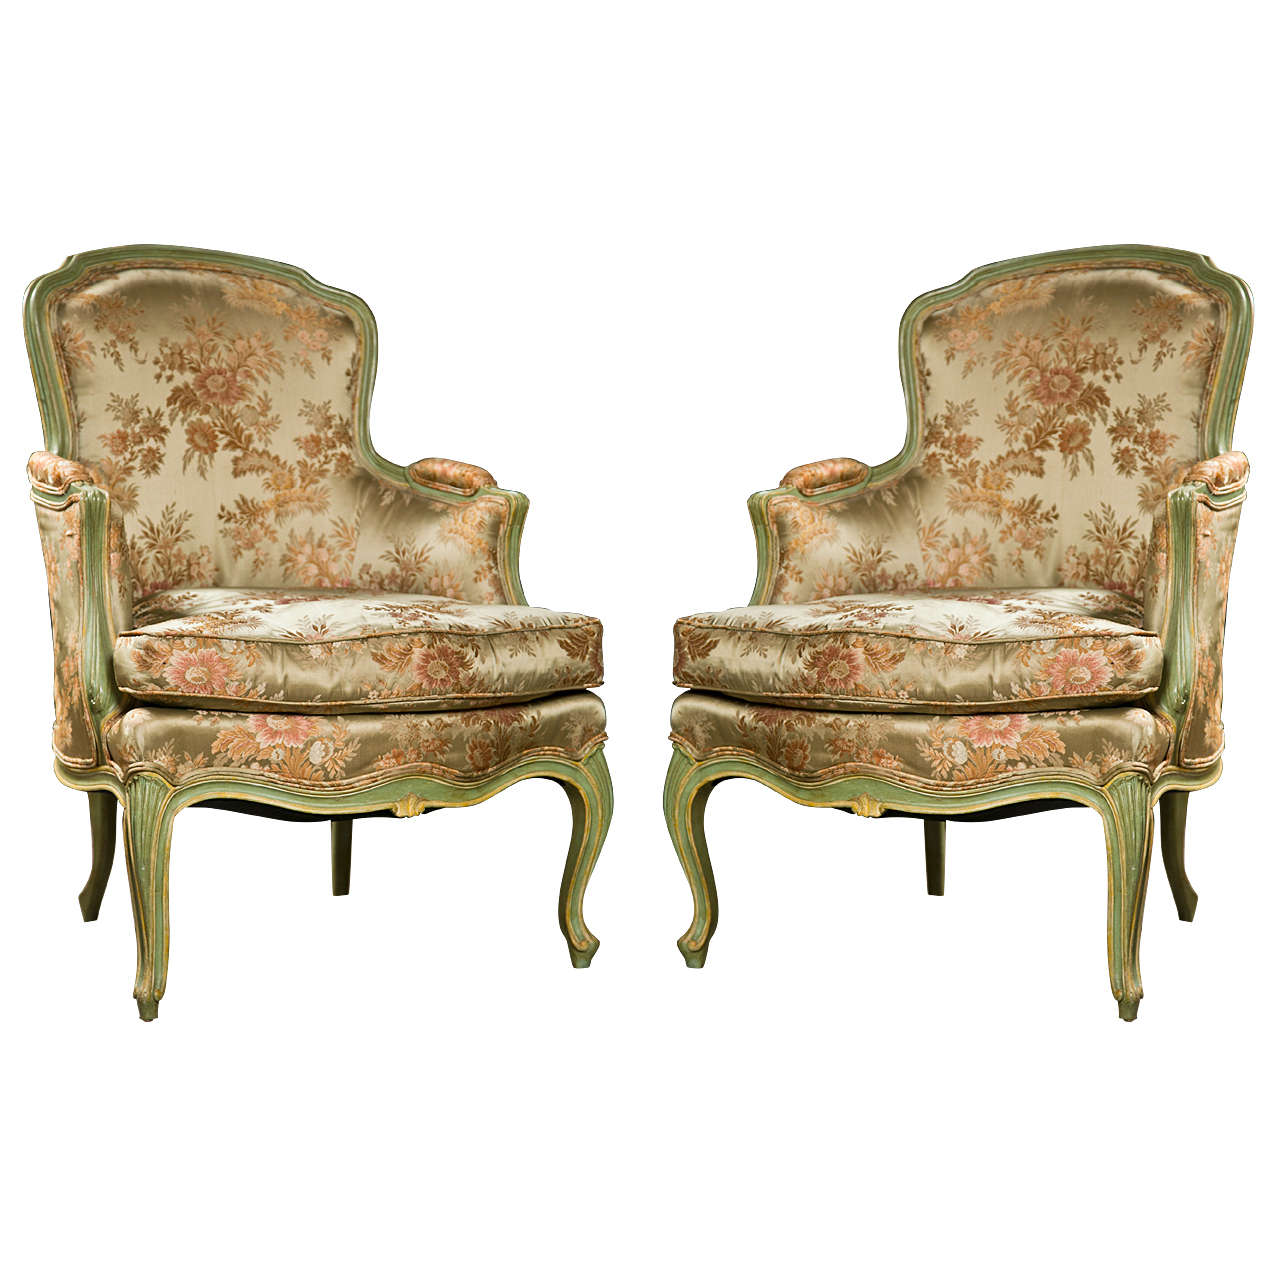 bergere chairs nailhead wingback chair pair of french louis xvi style at 1stdibs